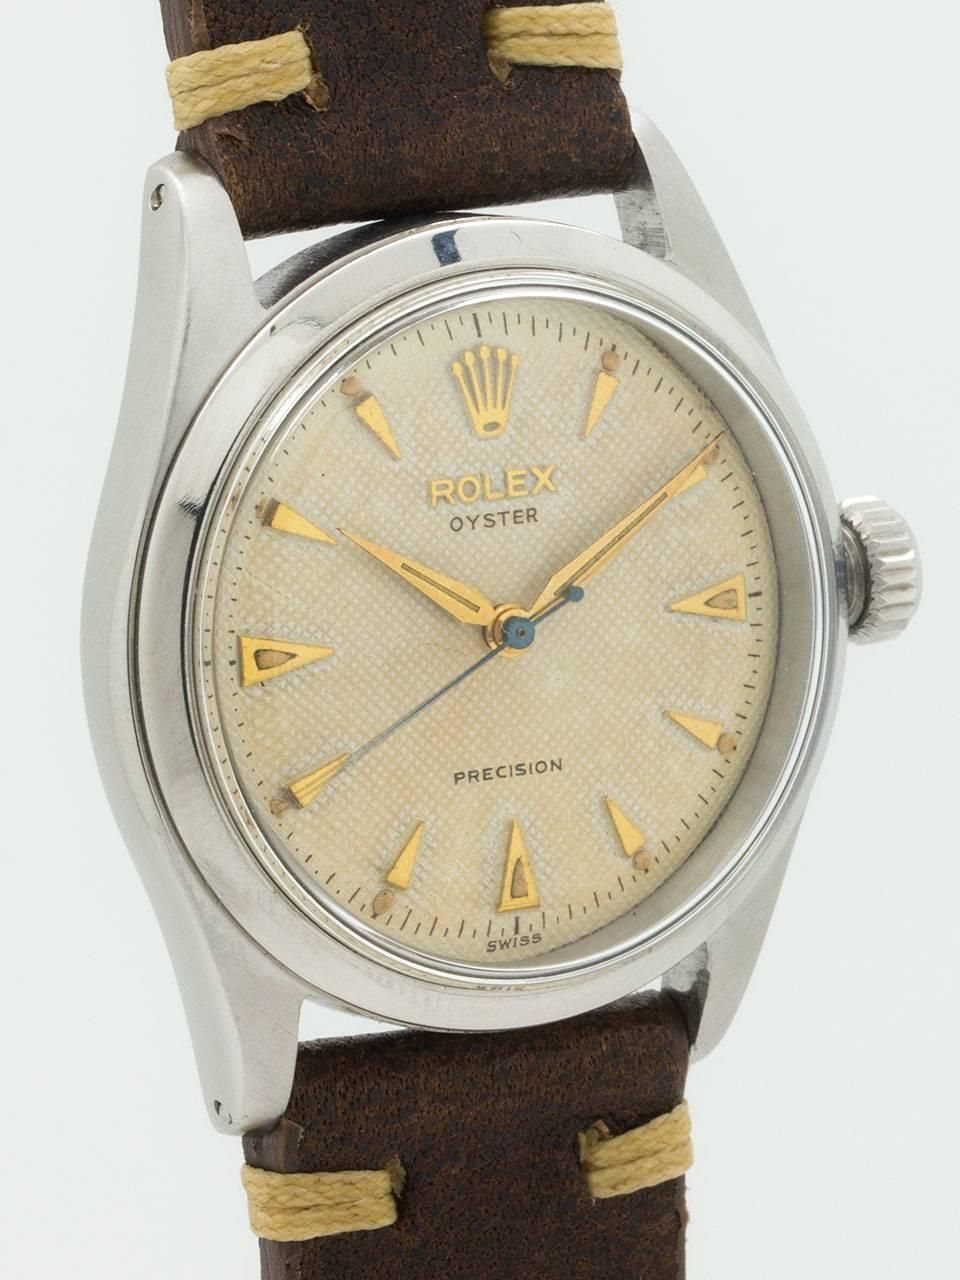 Rolex Yellow Gold Stainless Steel Oyster Precision Wristwatch Ref 6282 2